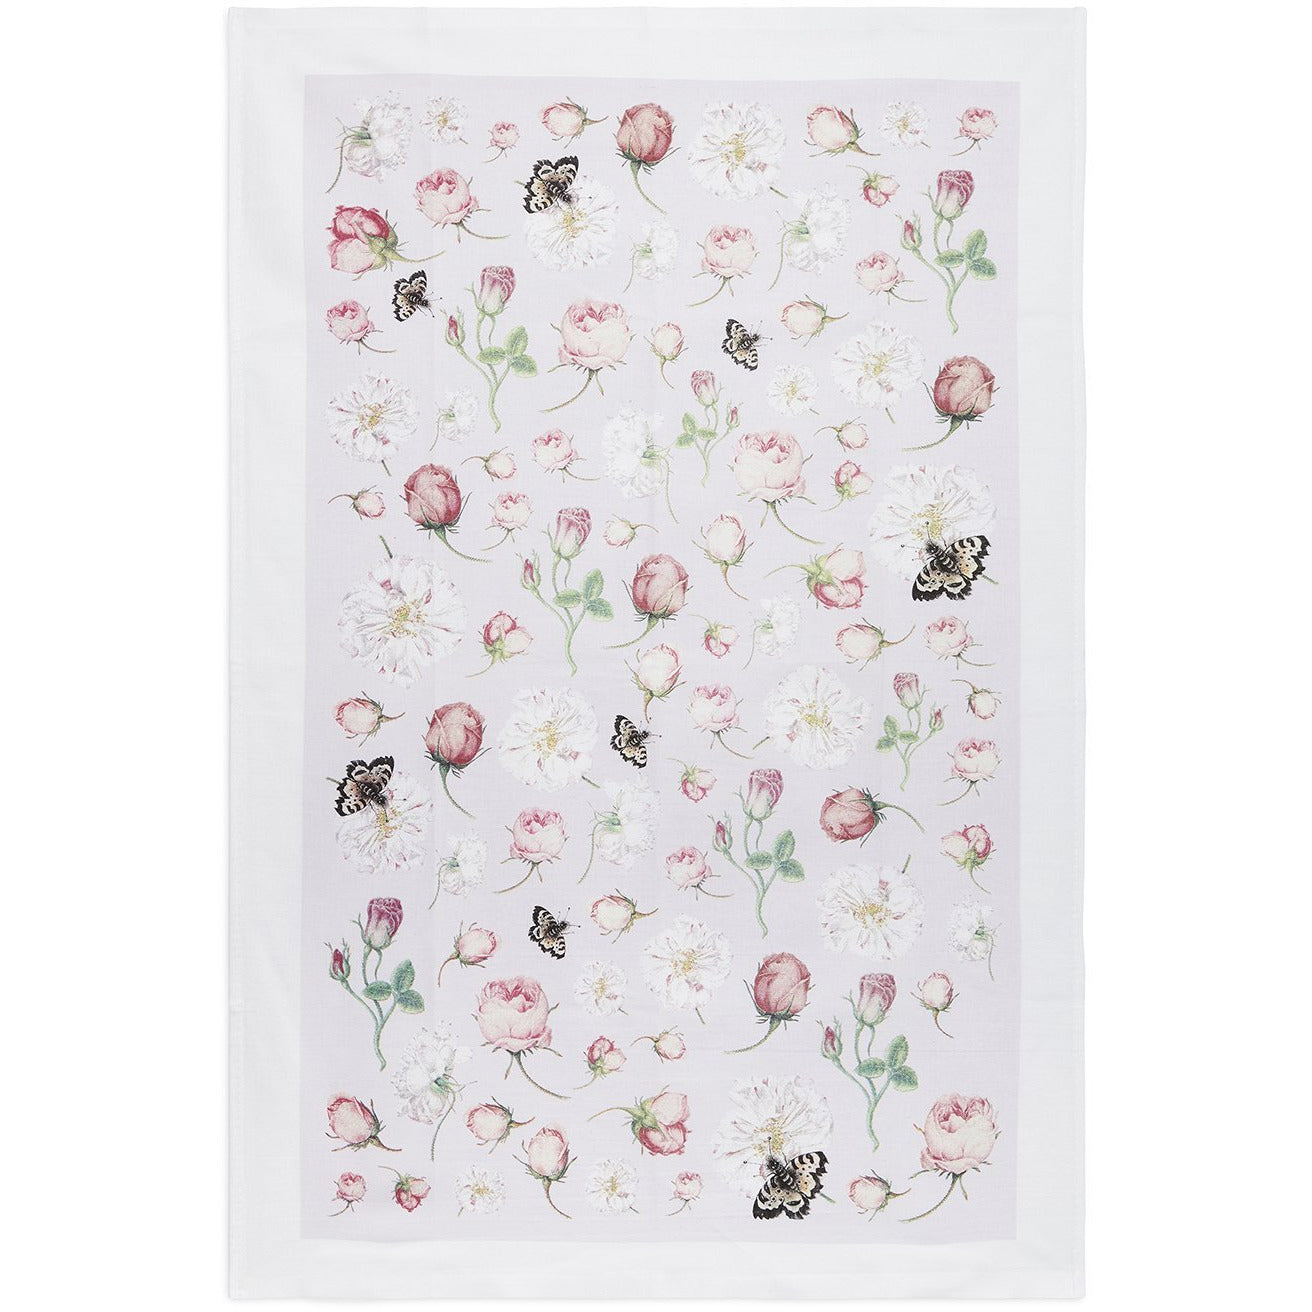 Featured image for the project: Summer Rose - Tea towel